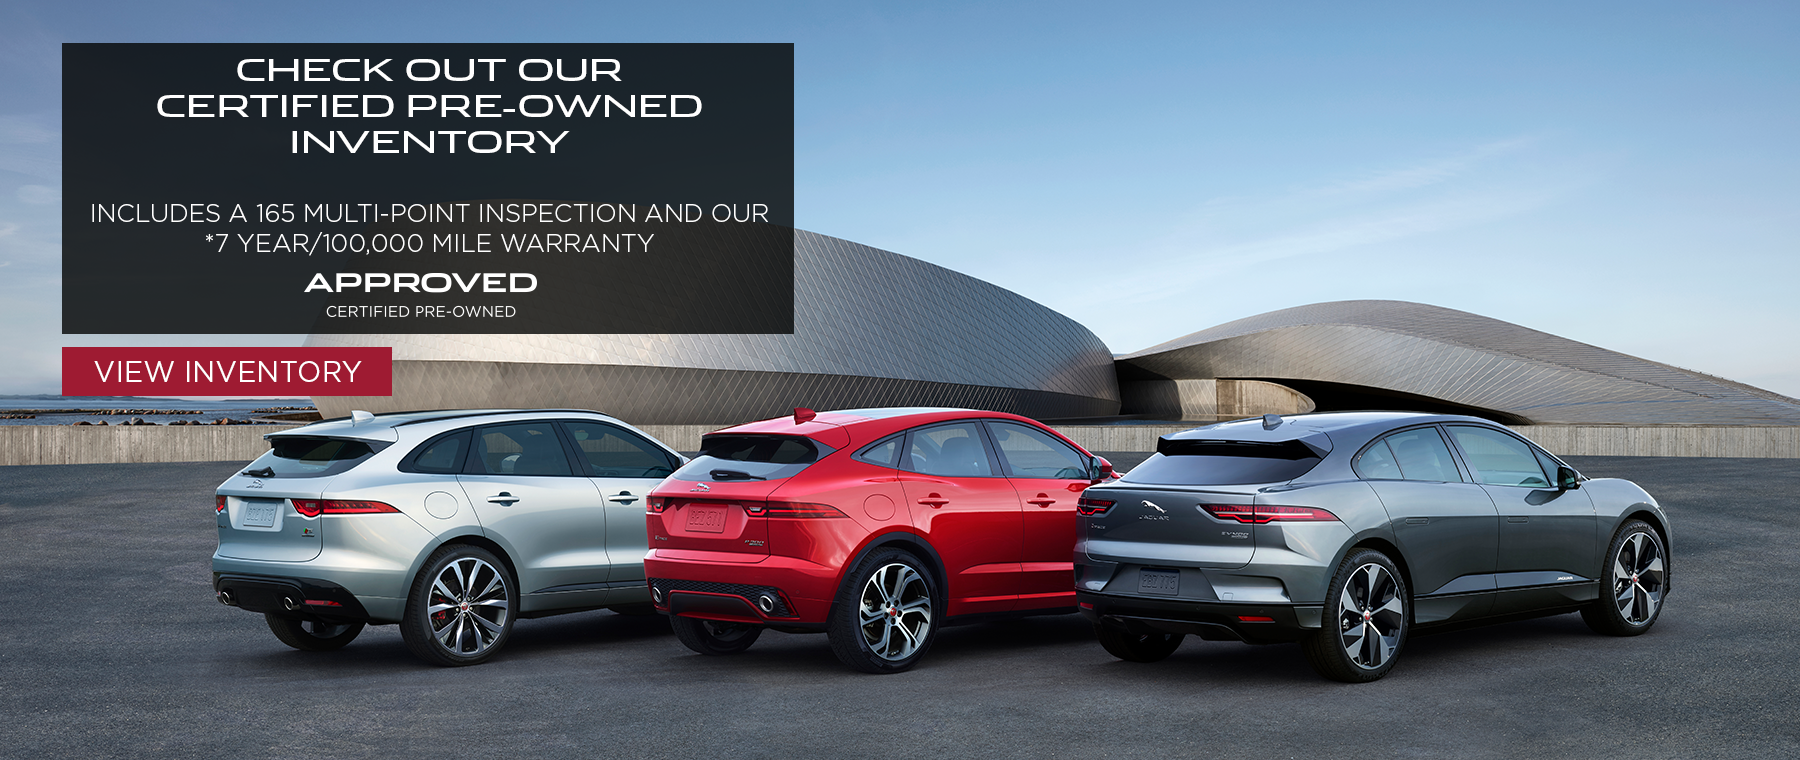 Check out our certified pre-owned inventory. Includes a 165 multipoint inspection and our 7 year/100,000 mile warranty. CPO logo. Click to view inventory. Rear view of jaguar models on pavement